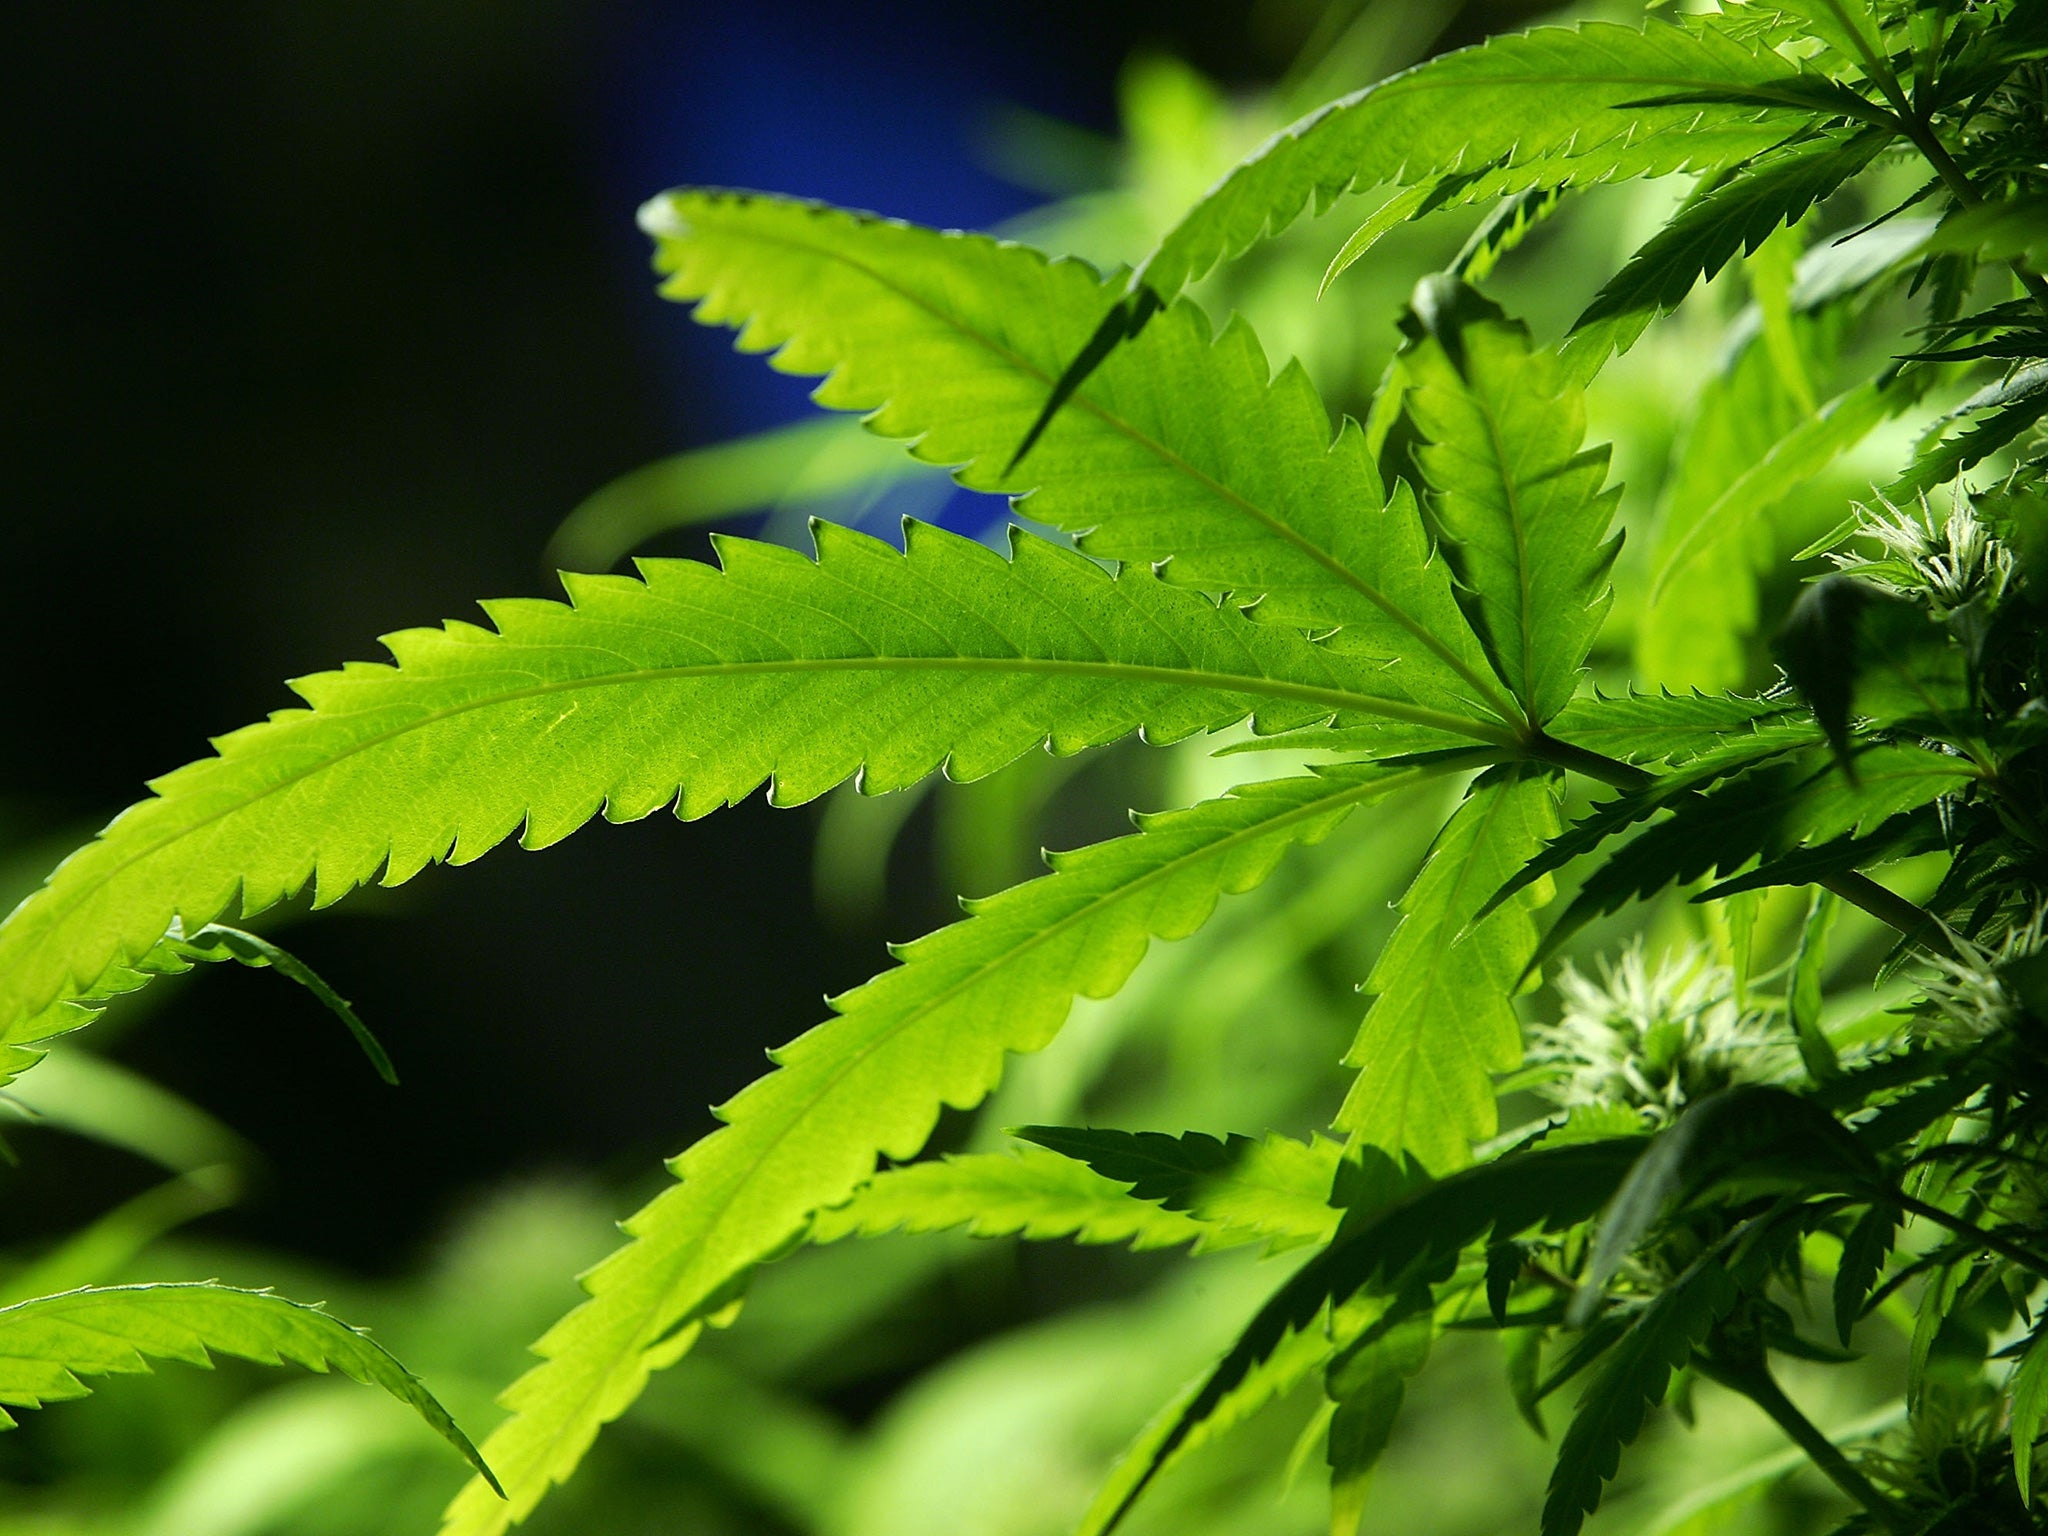 Doctors should be able to prescribe medical cannabis, Home Office adviser concludes